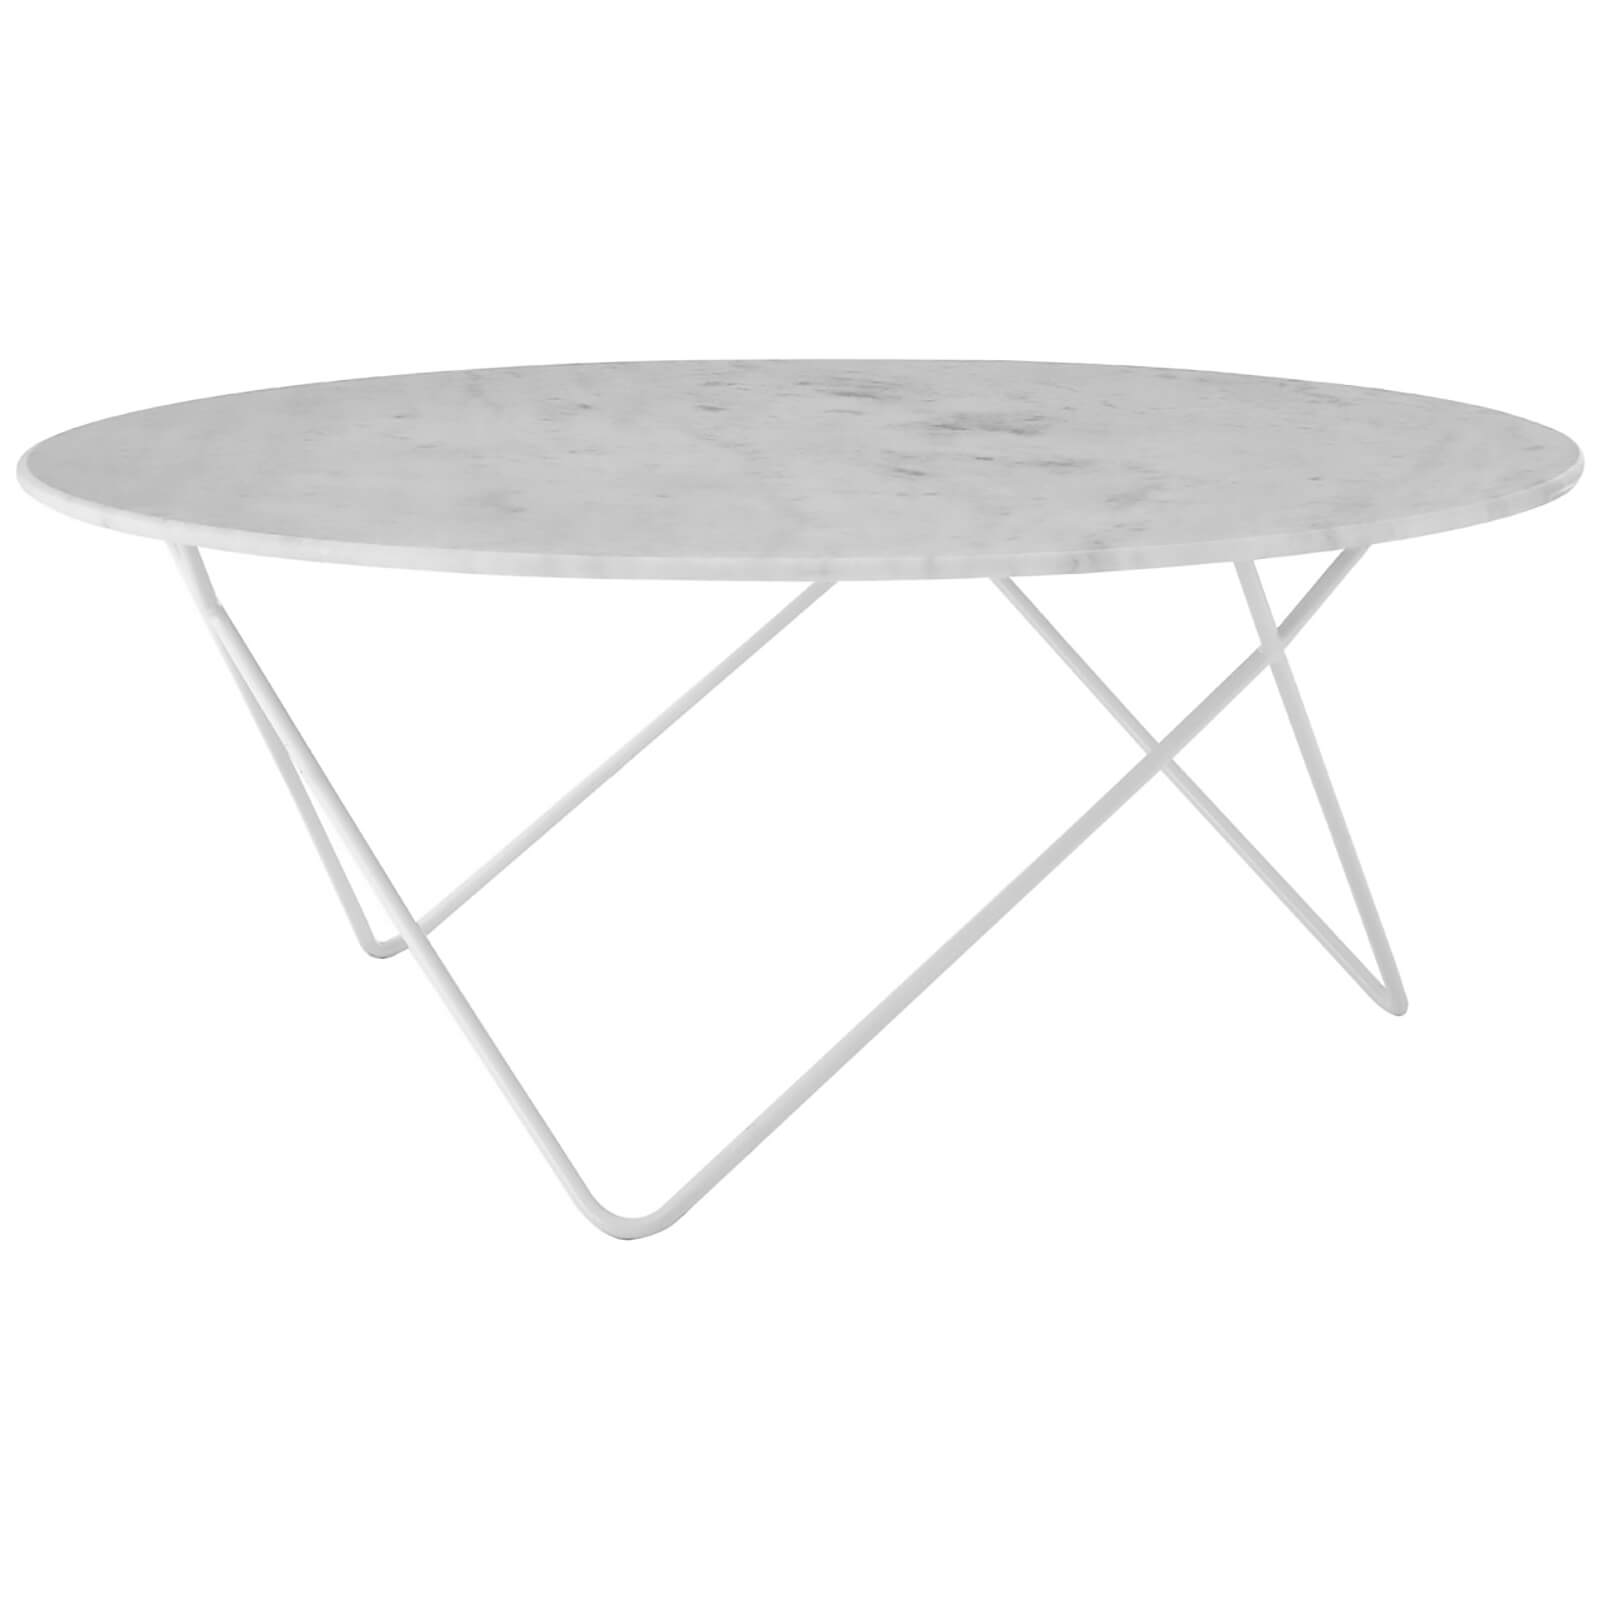 Fifty Five South Boho Round Coffee Table - Marble